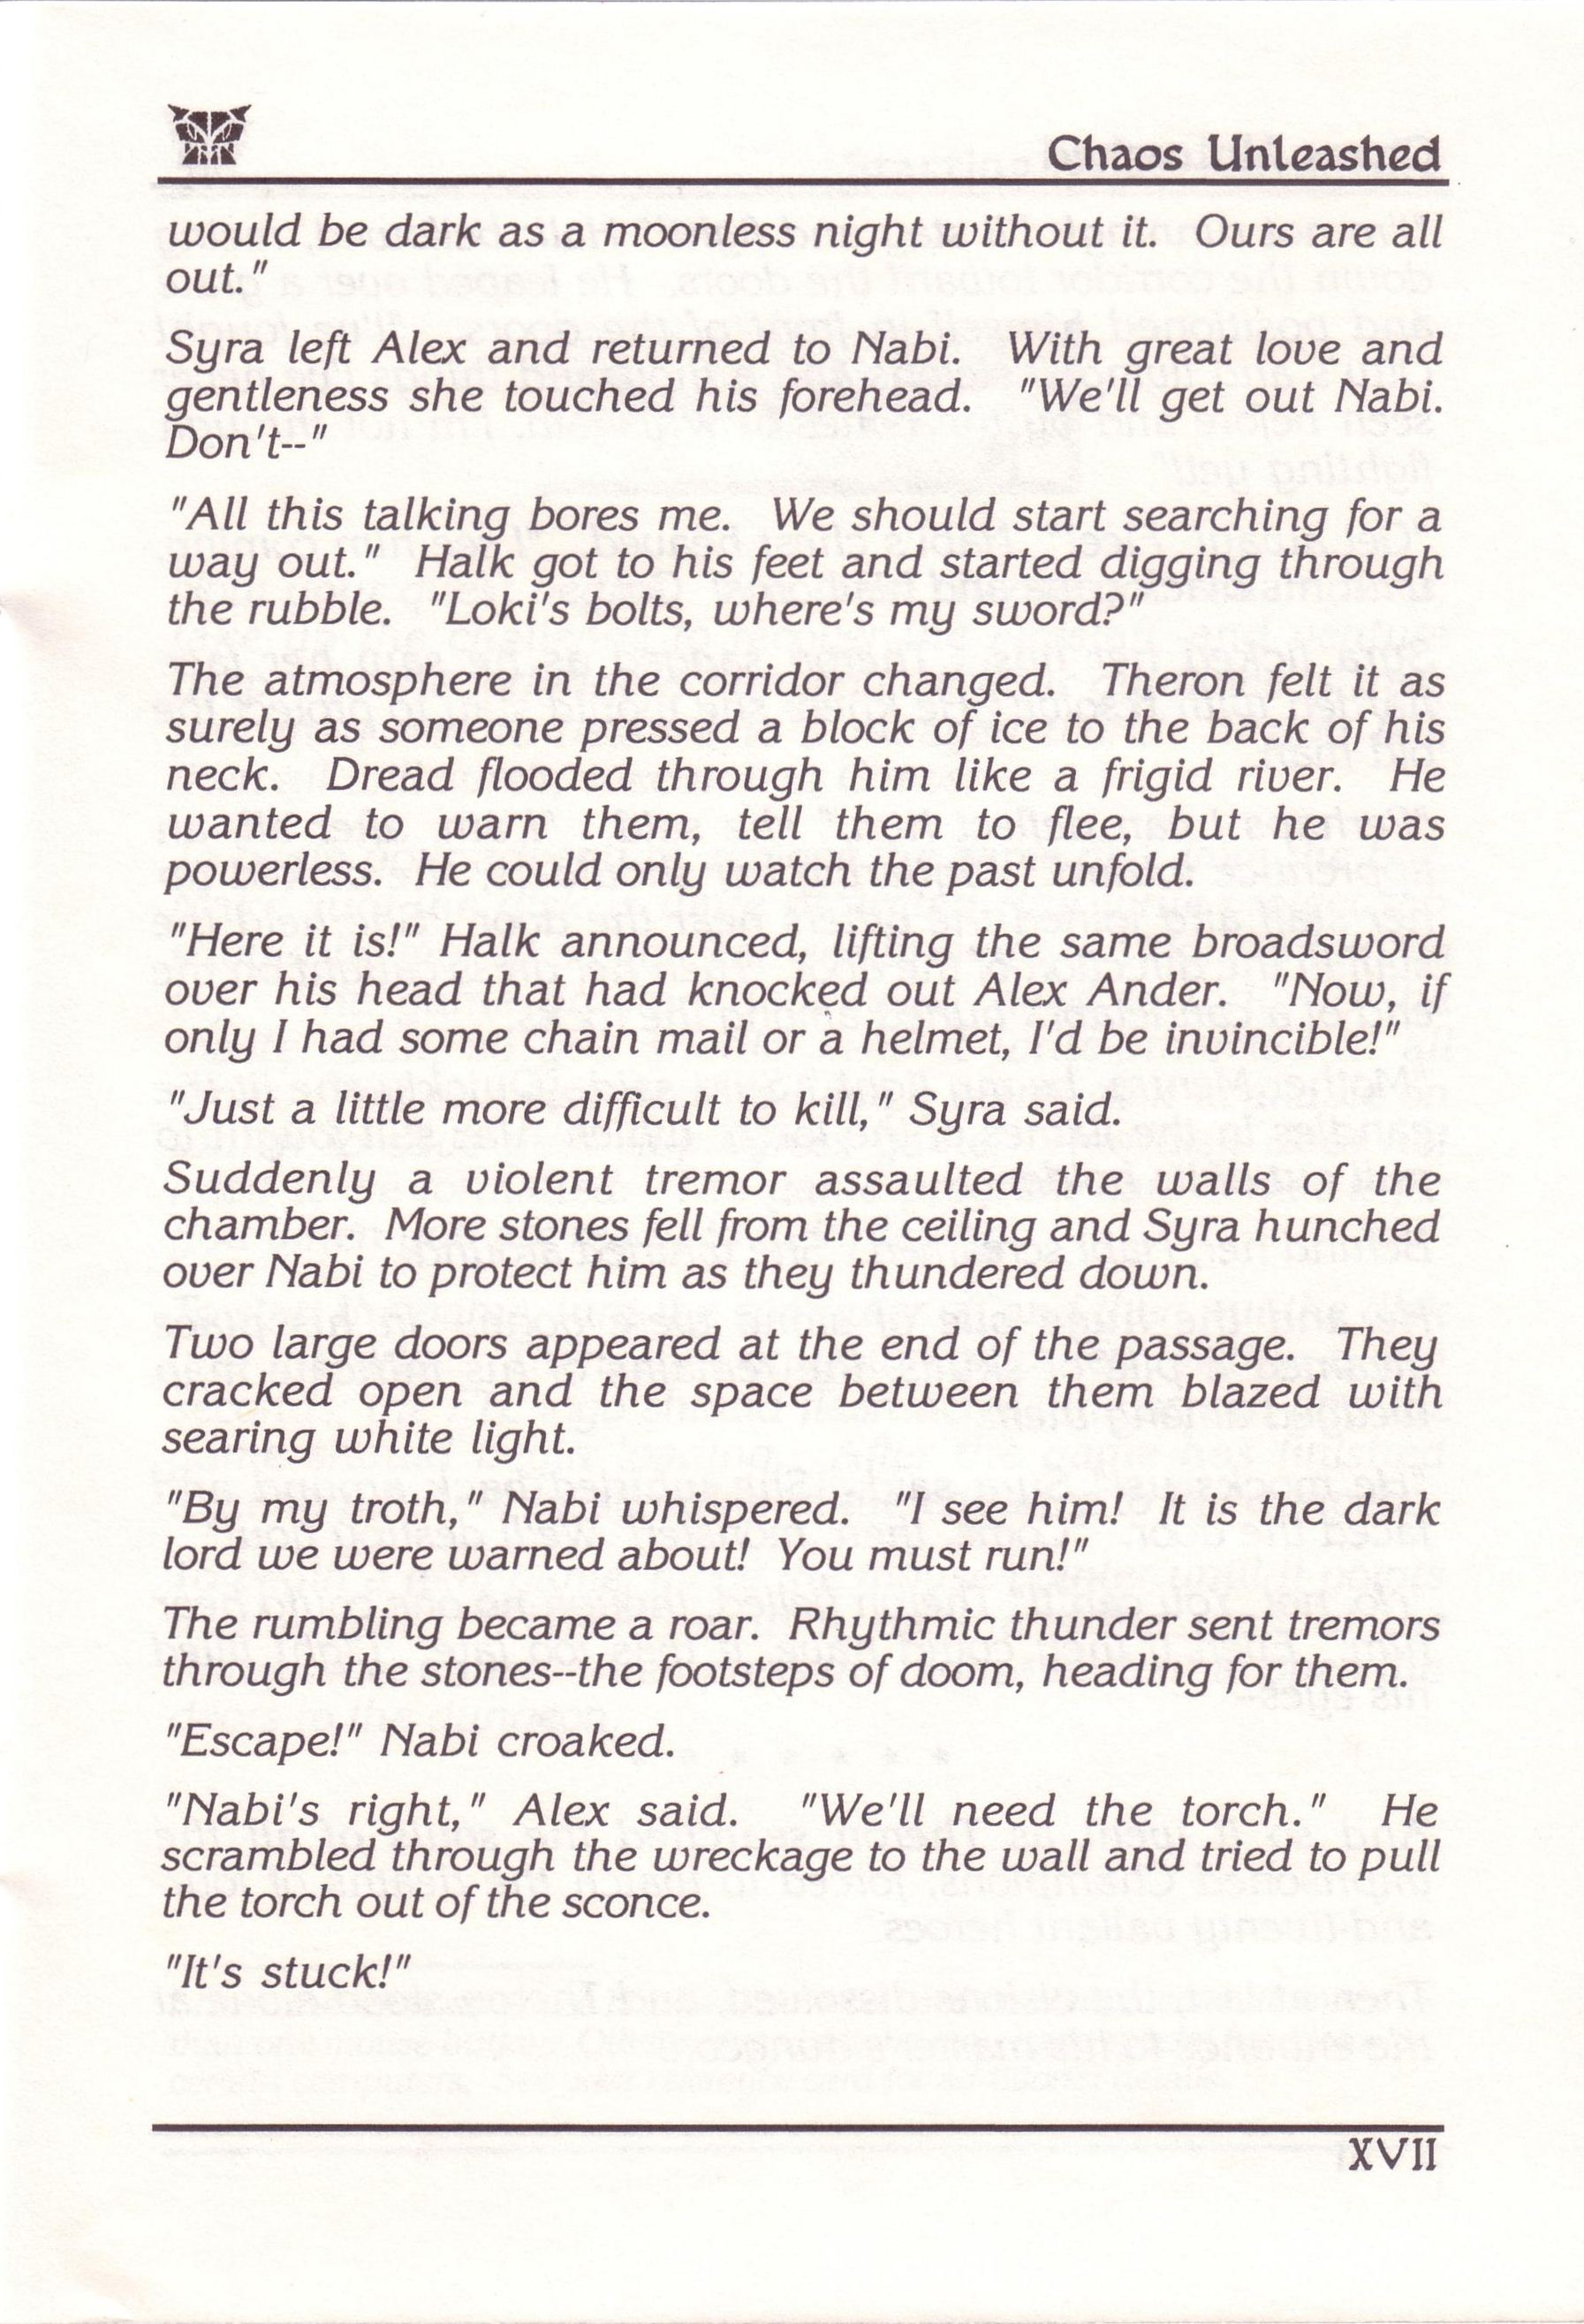 Dungeon Master for PC with FTL Sound Adapter (US Release) - Manual Page 23